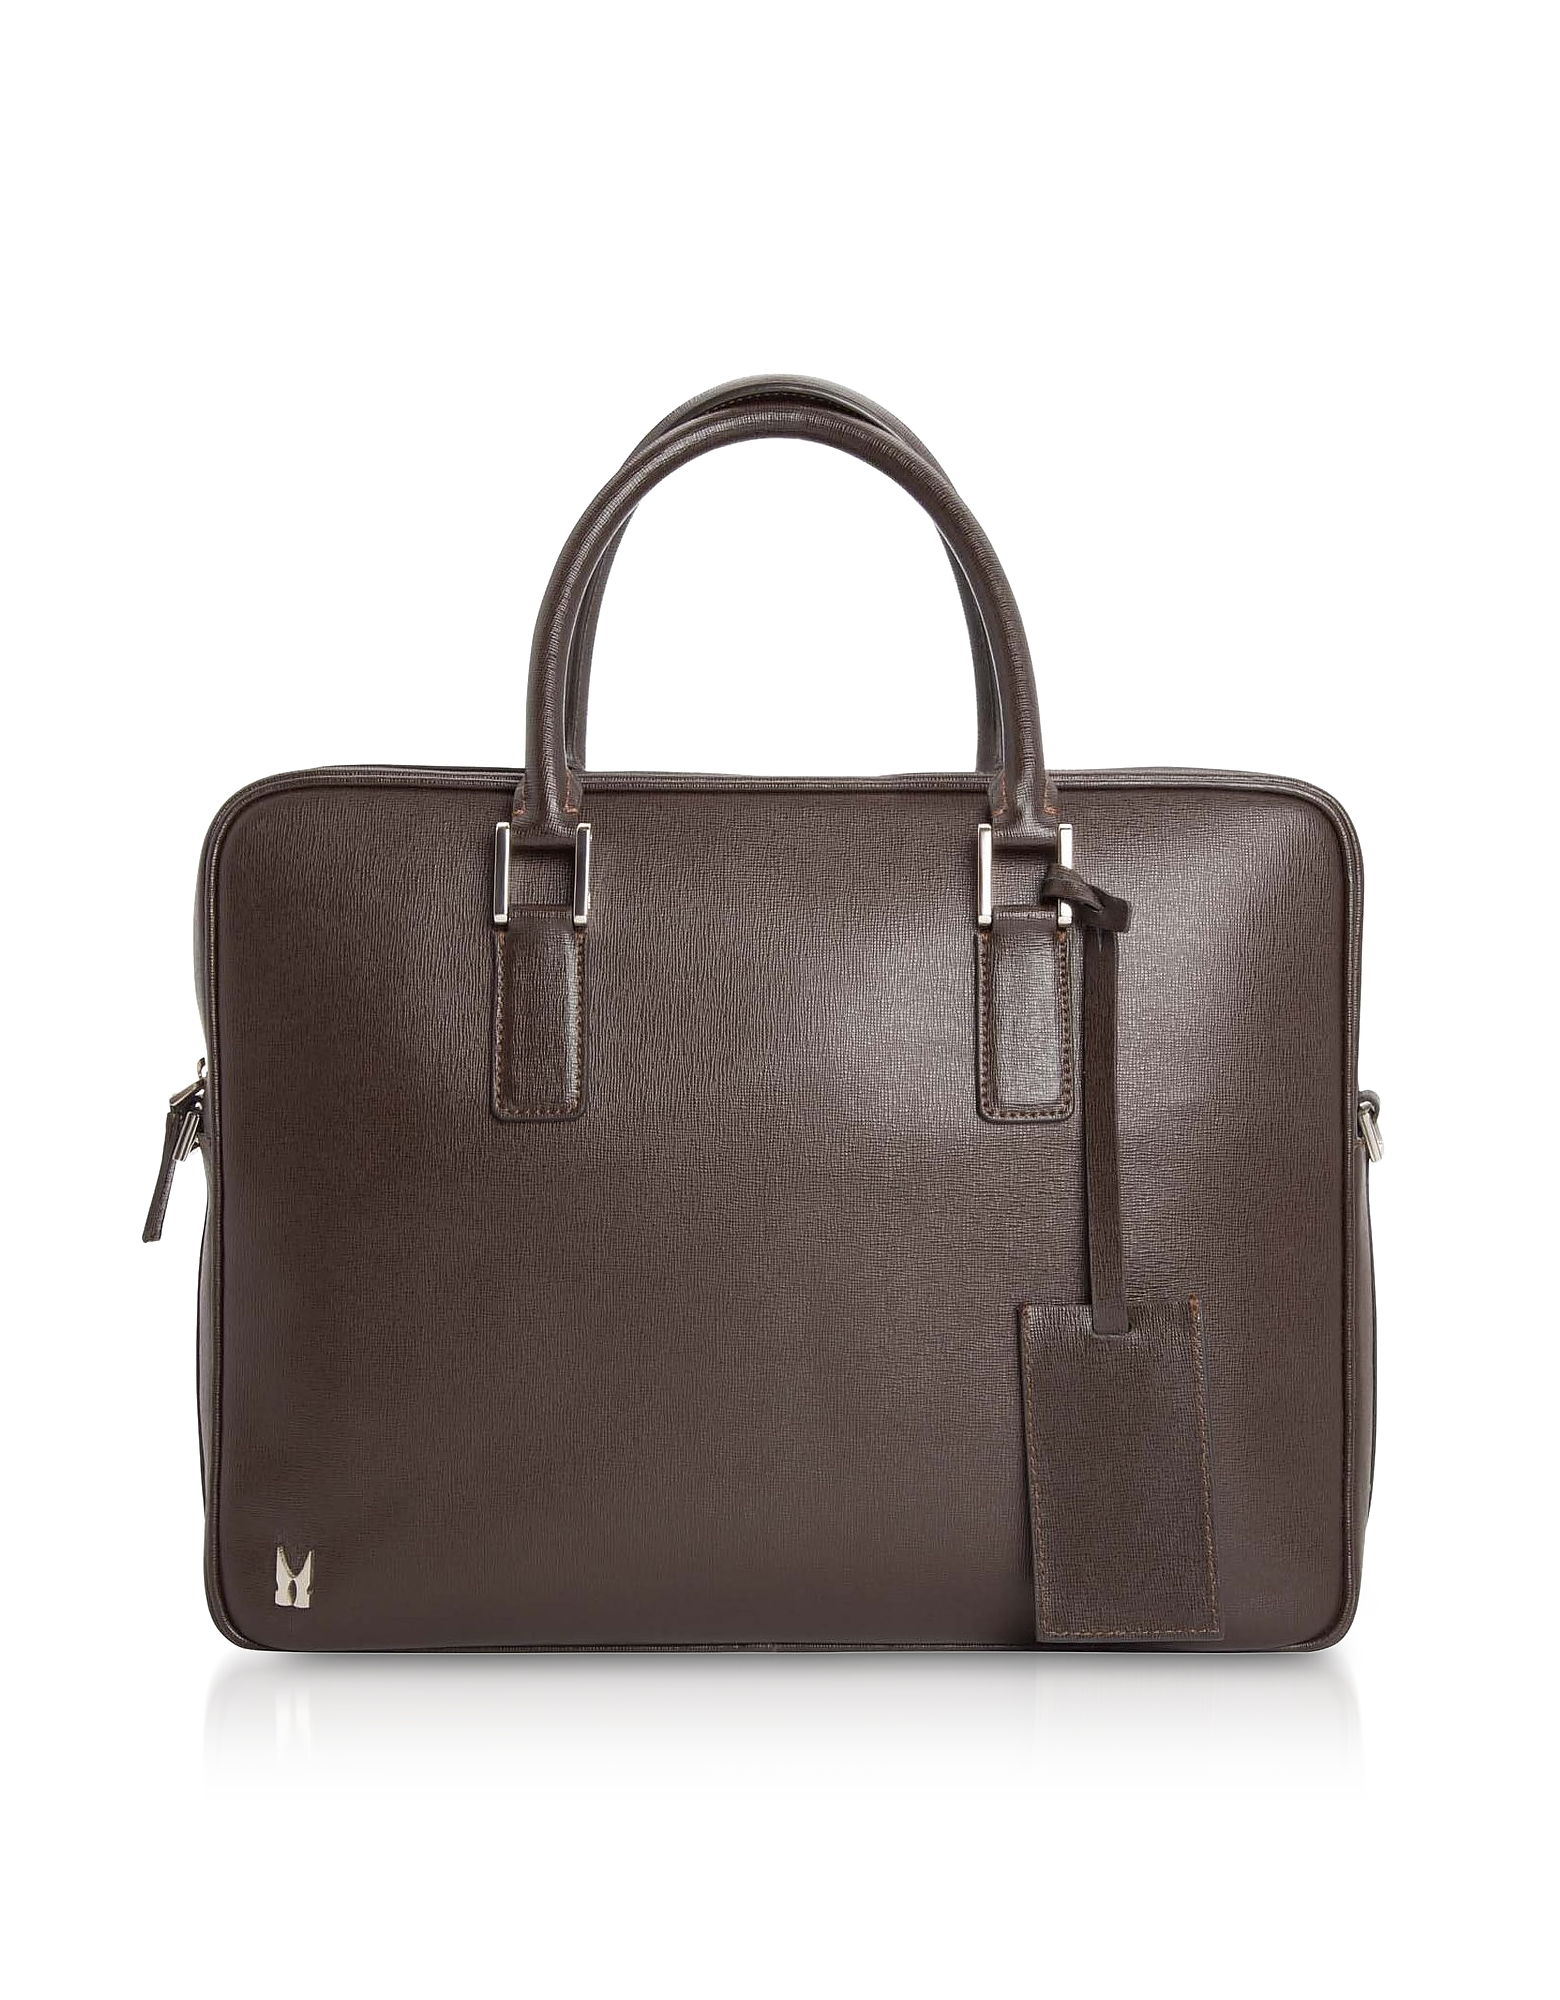 Moreschi Designer Briefcases, Printed Leather Briefcase w/ Shoulder Strap